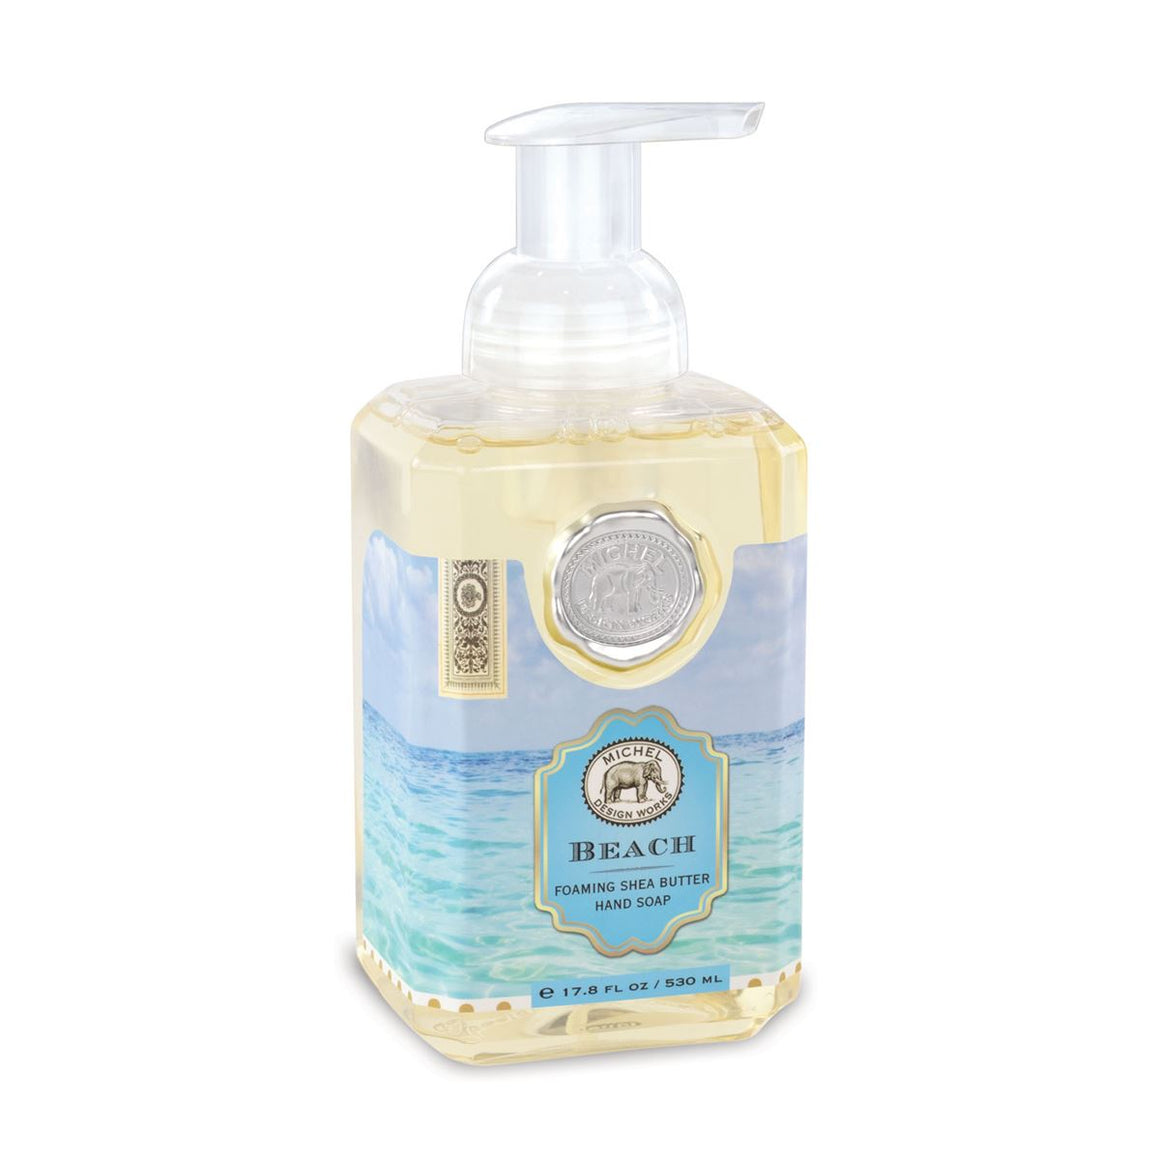 Michel Foaming Hand Soap